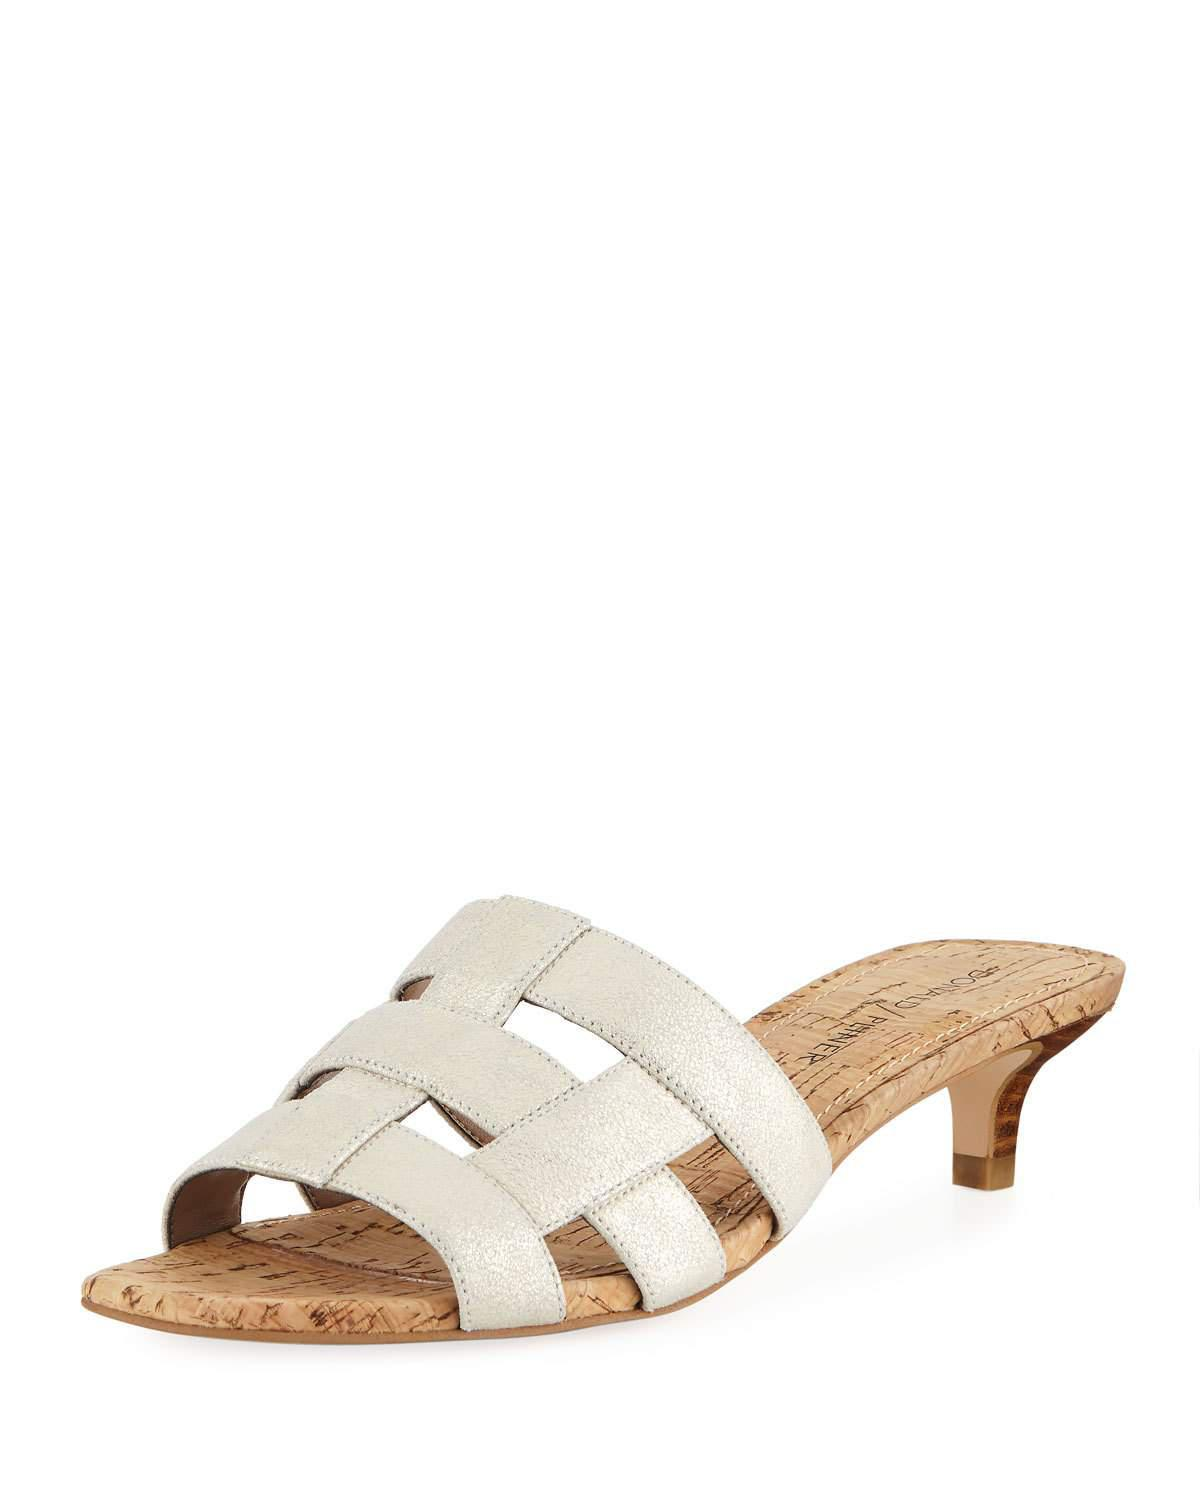 Donald Pliner Etta Metallic Satin Caged Mules